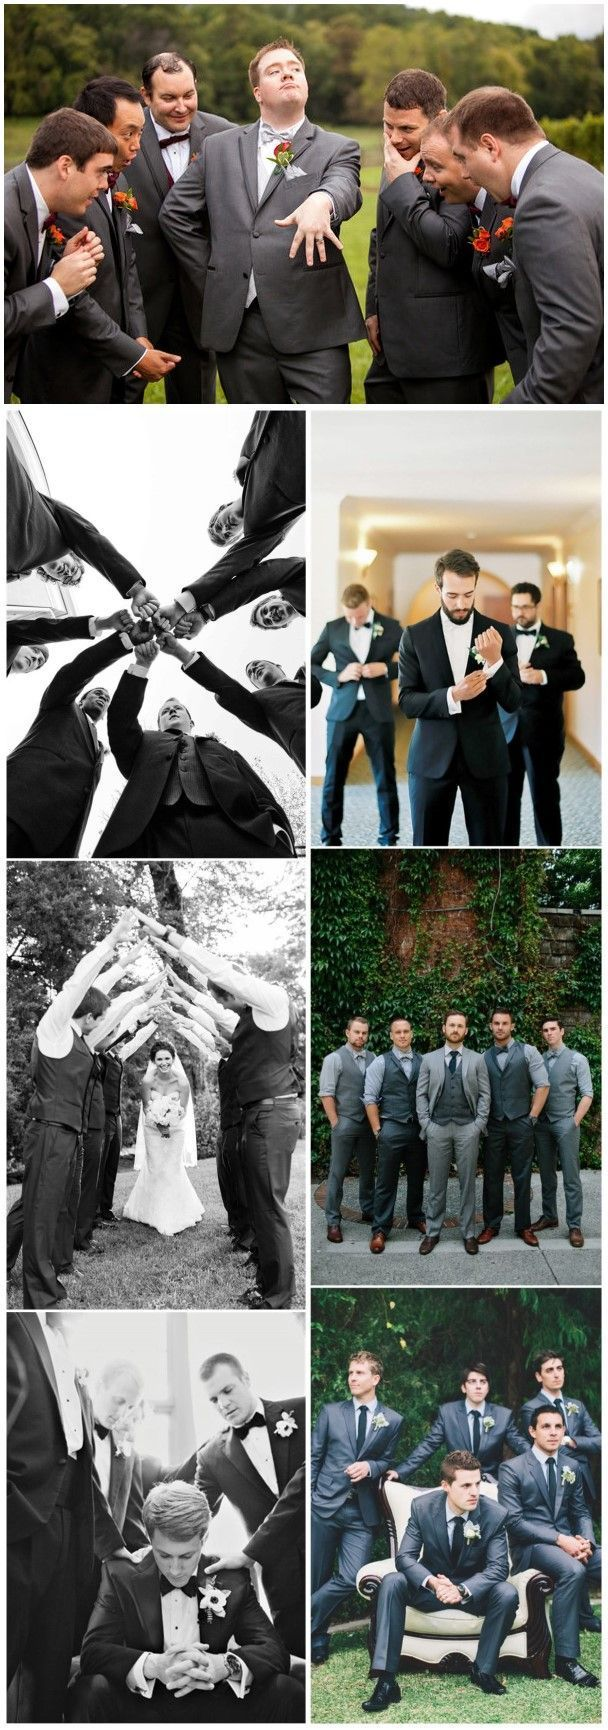 Photo of 21 Must-have Groomsmen Photos Ideas to Make an Awesome Wedding 21 Must-have Groo…